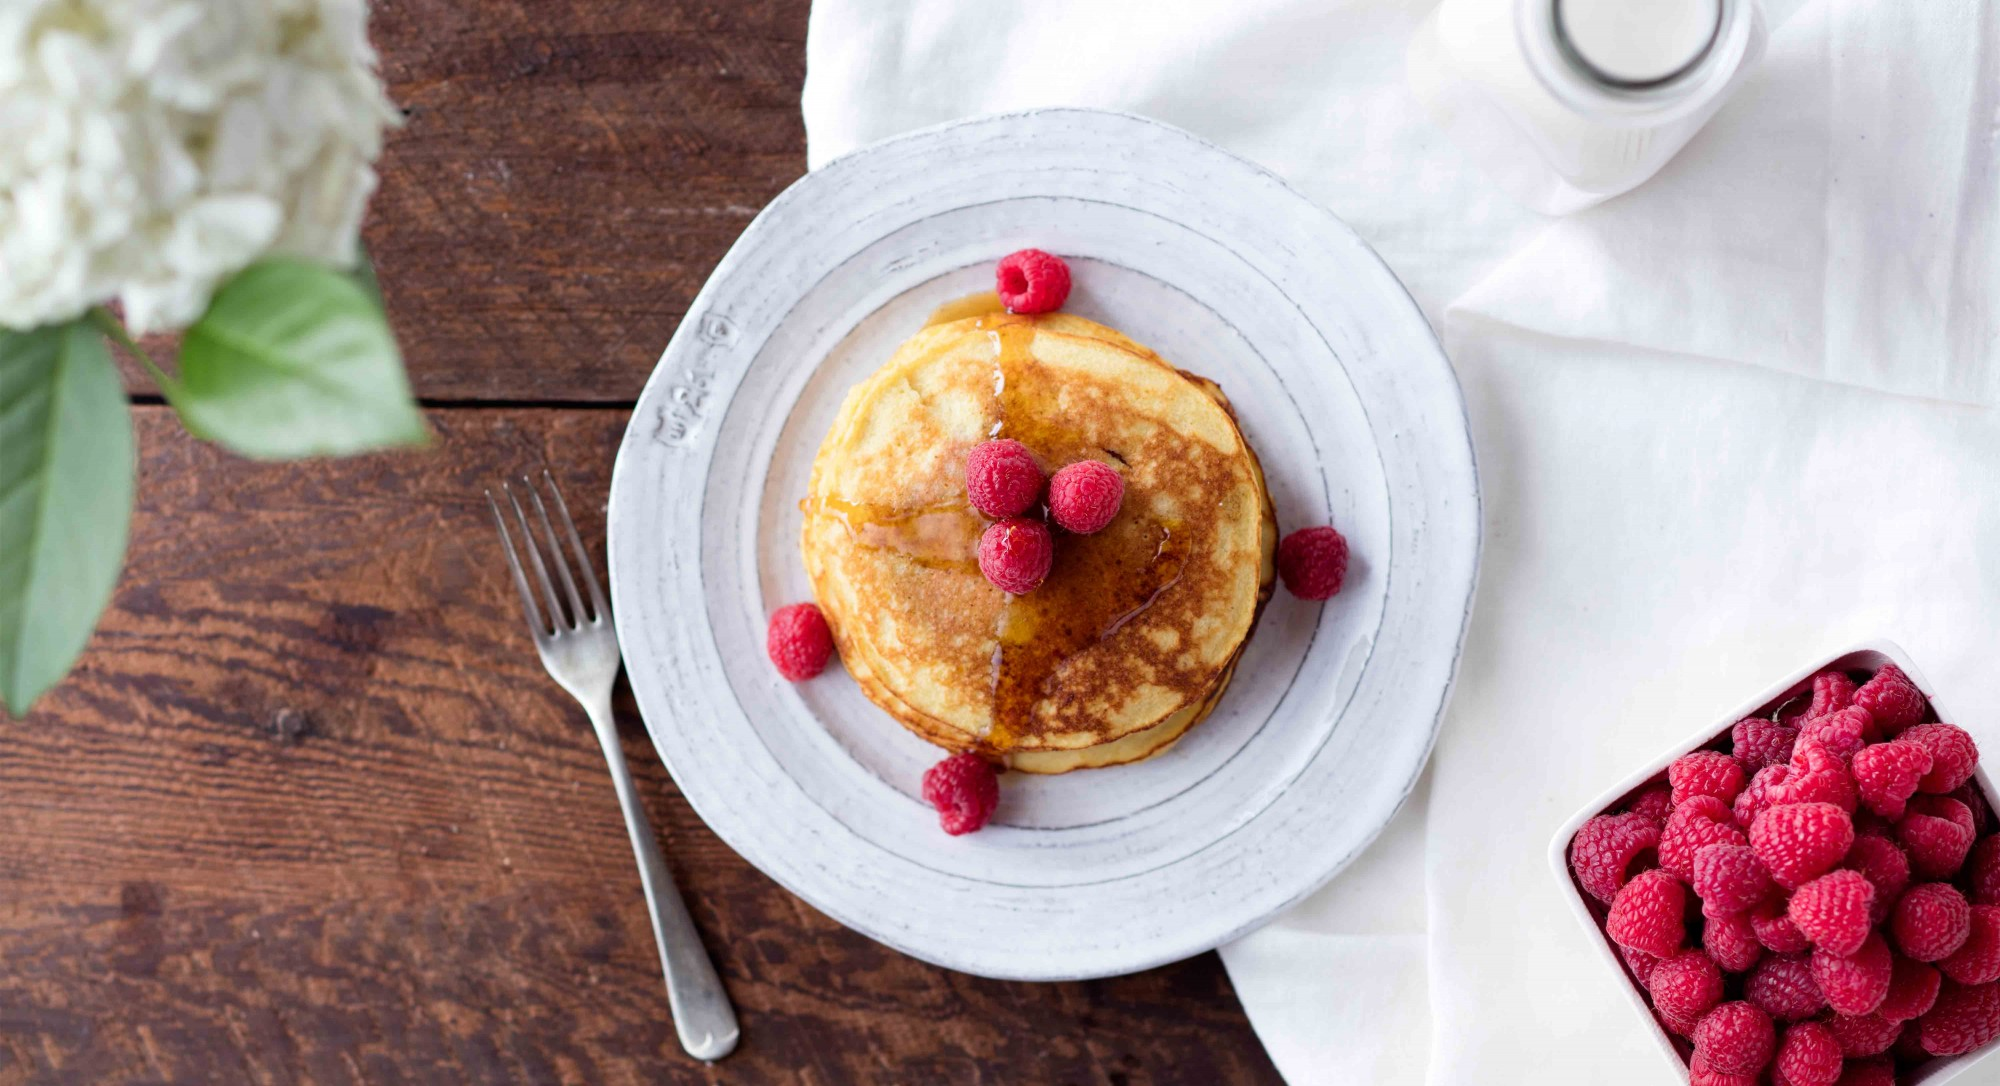 Paleo Pancakes: Best Breakfast for the Paleo Diet?